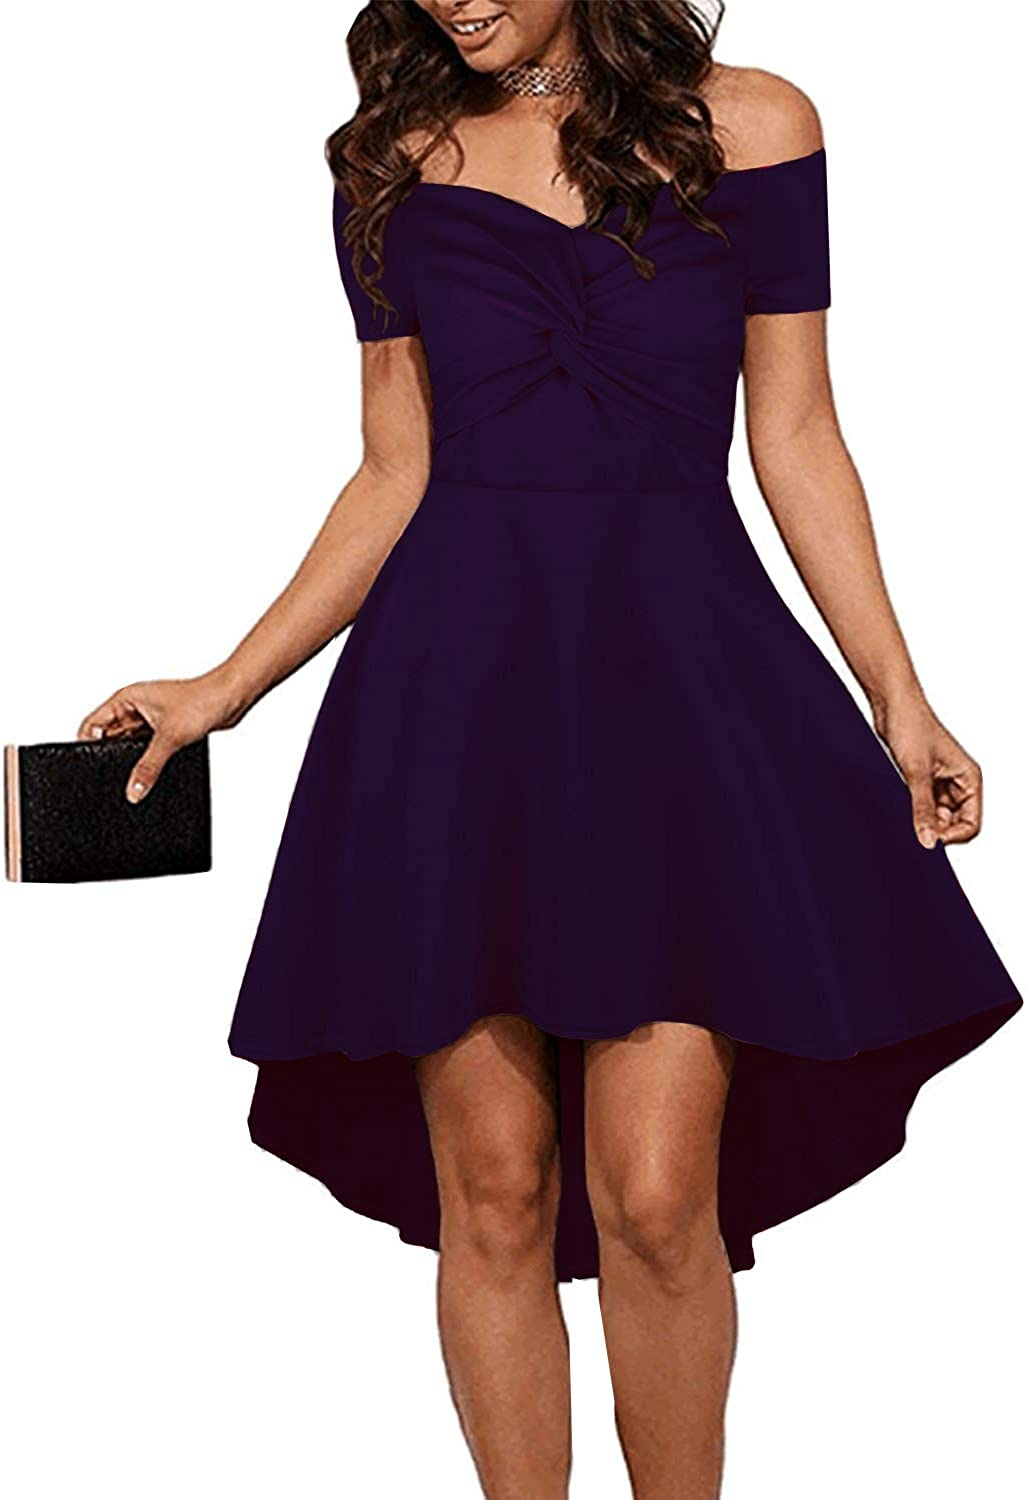 Ulrico1 Women's Off The Shoulder Short Sleeve Twist Knot Front High Low Cocktail Party Skater Dress